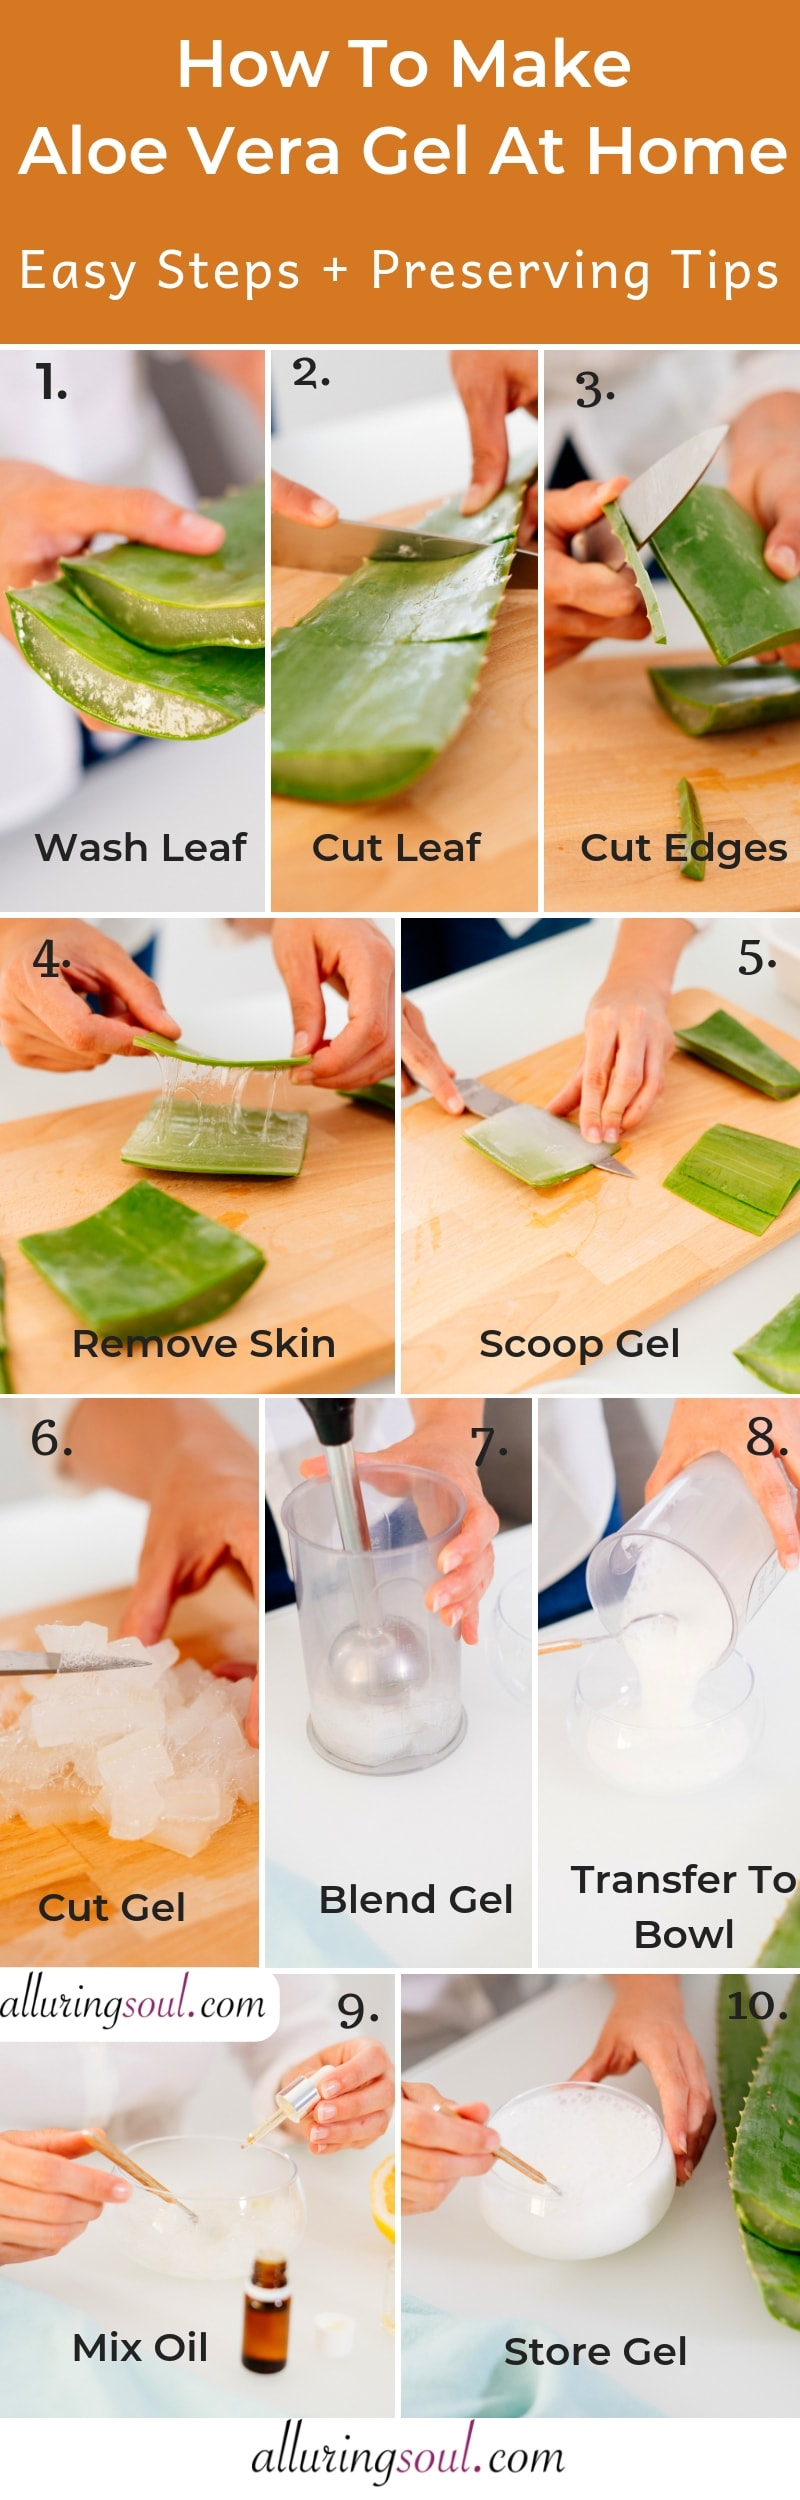 how to make aloe vera gel at home